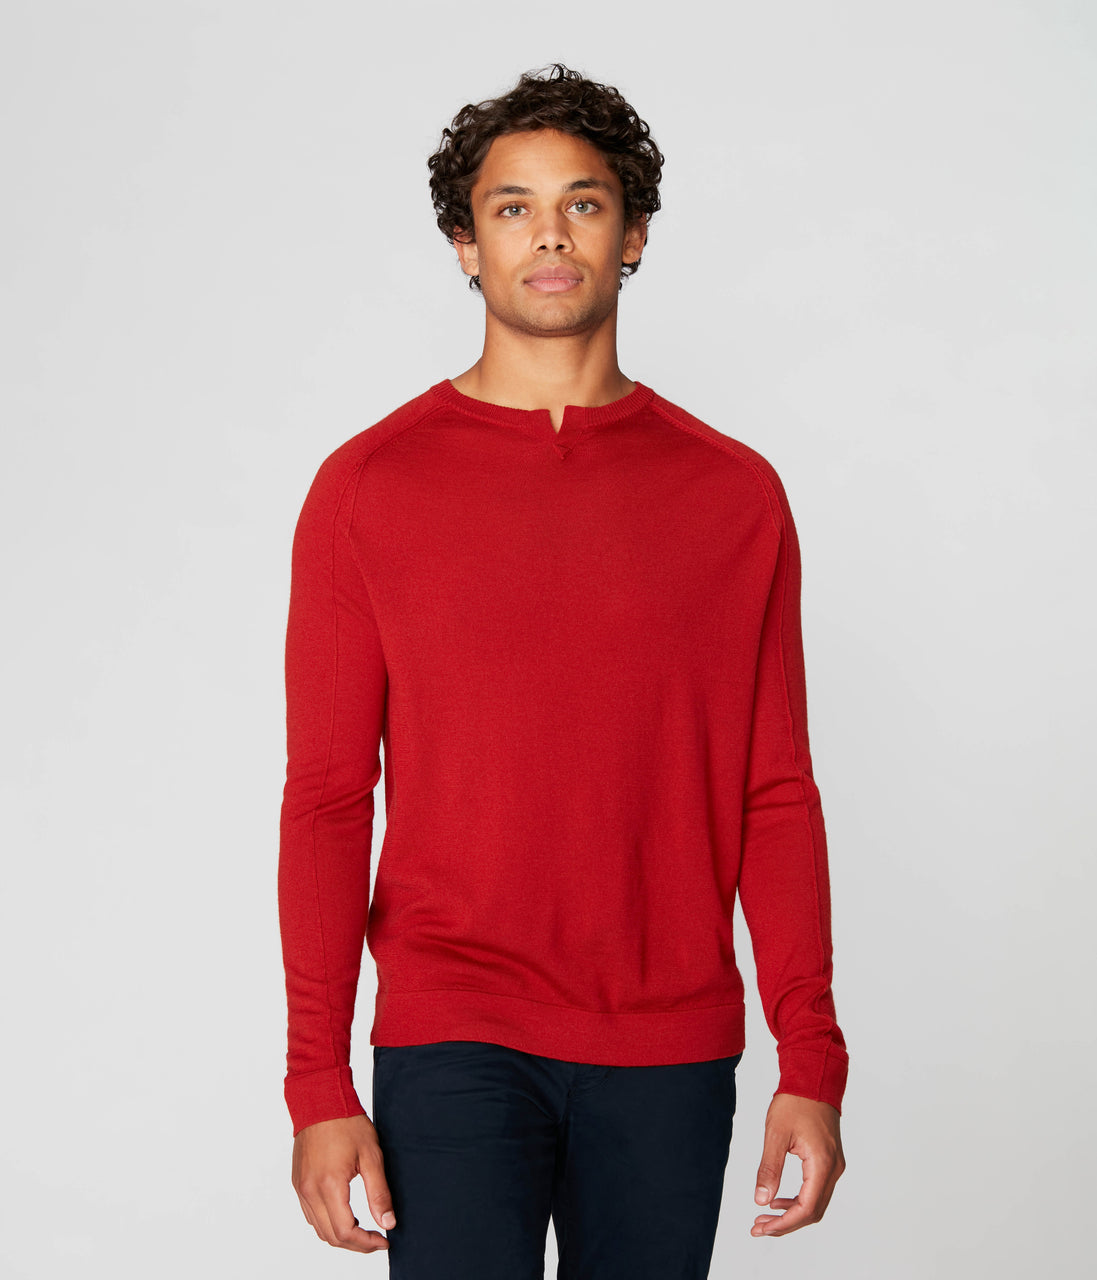 MVP V-Notch Sweater - Flame - Good Man Brand - MVP V-Notch Sweater - Flame